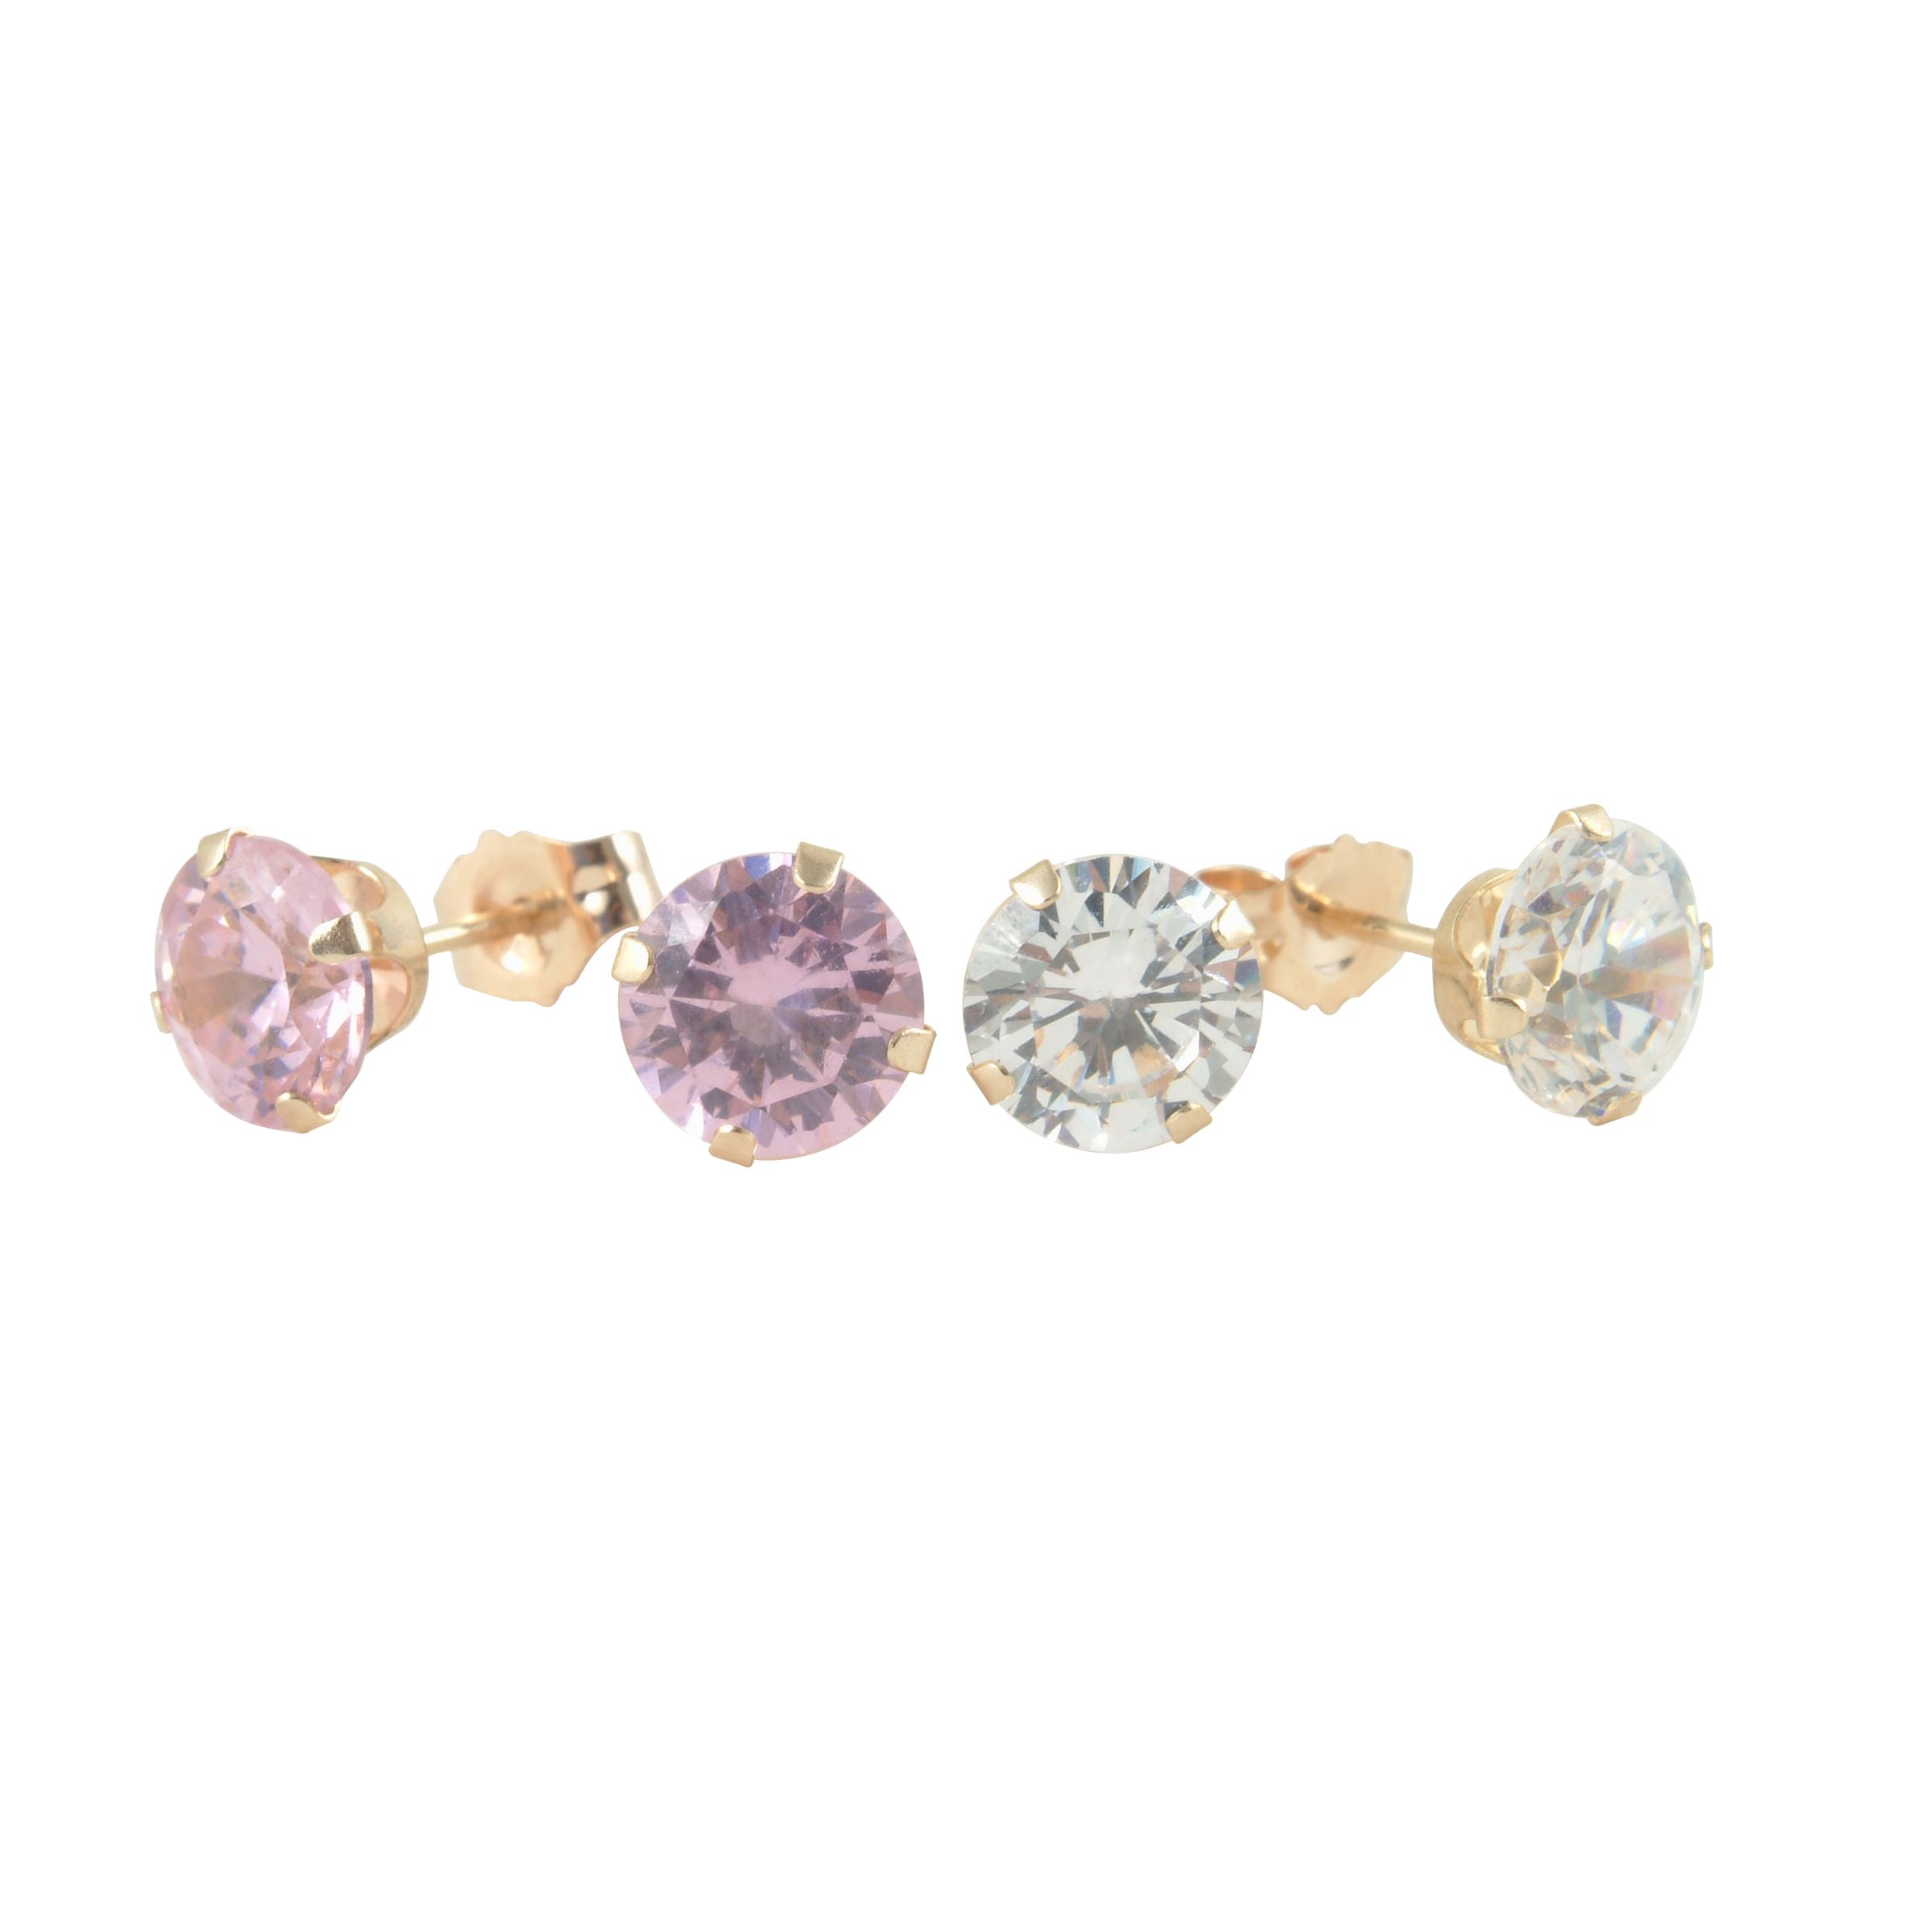 10kt Gold Pink and White Cubic